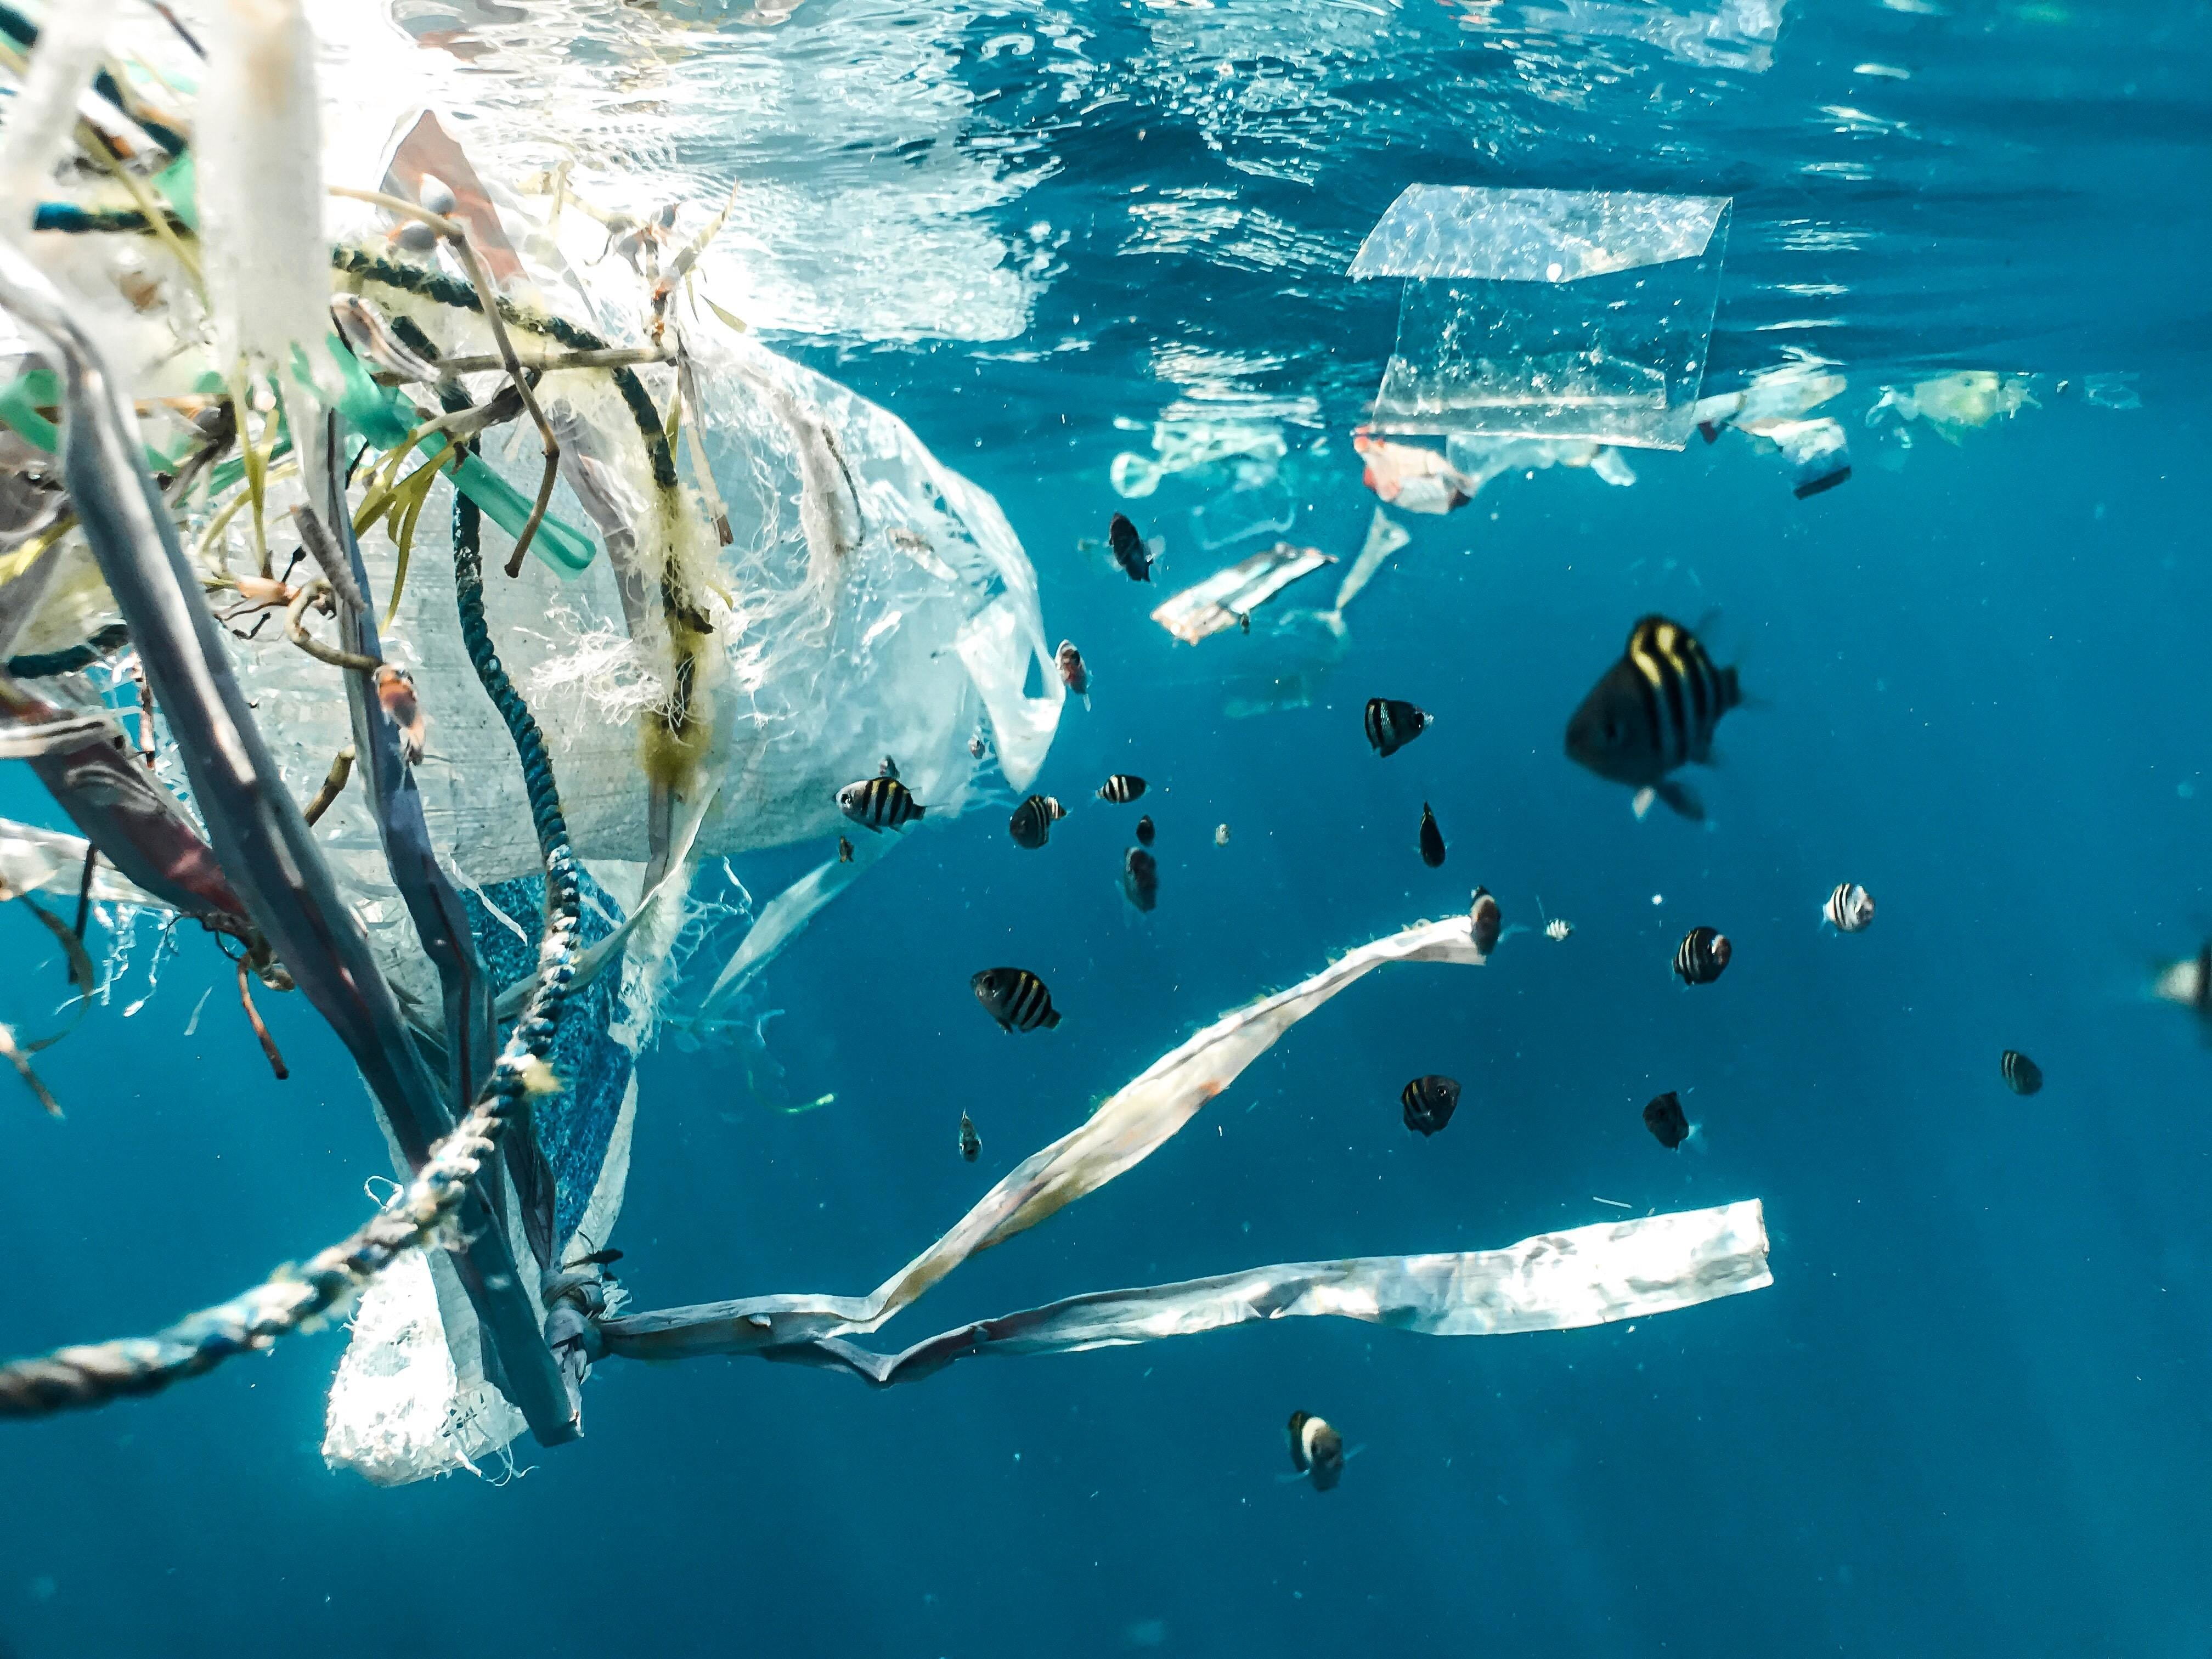 these fish are swimming in plastic. Problems caused by human activity like this pollution are damaging the health of our ocean